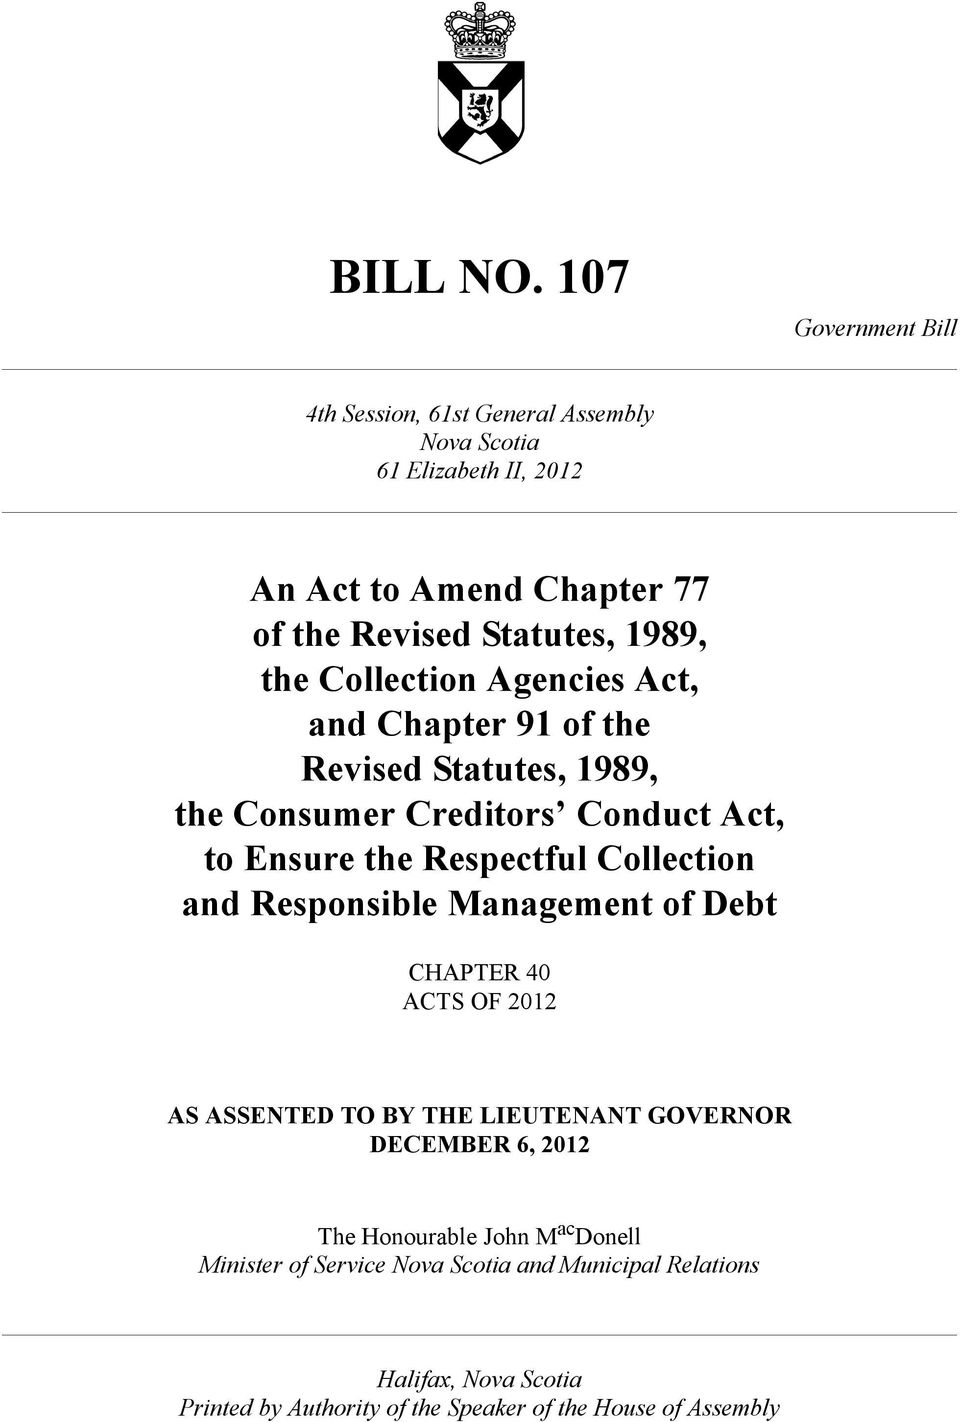 the Collection Agencies Act, and Chapter 91 of the Revised Statutes, 1989, the Consumer Creditors Conduct Act, to Ensure the Respectful Collection